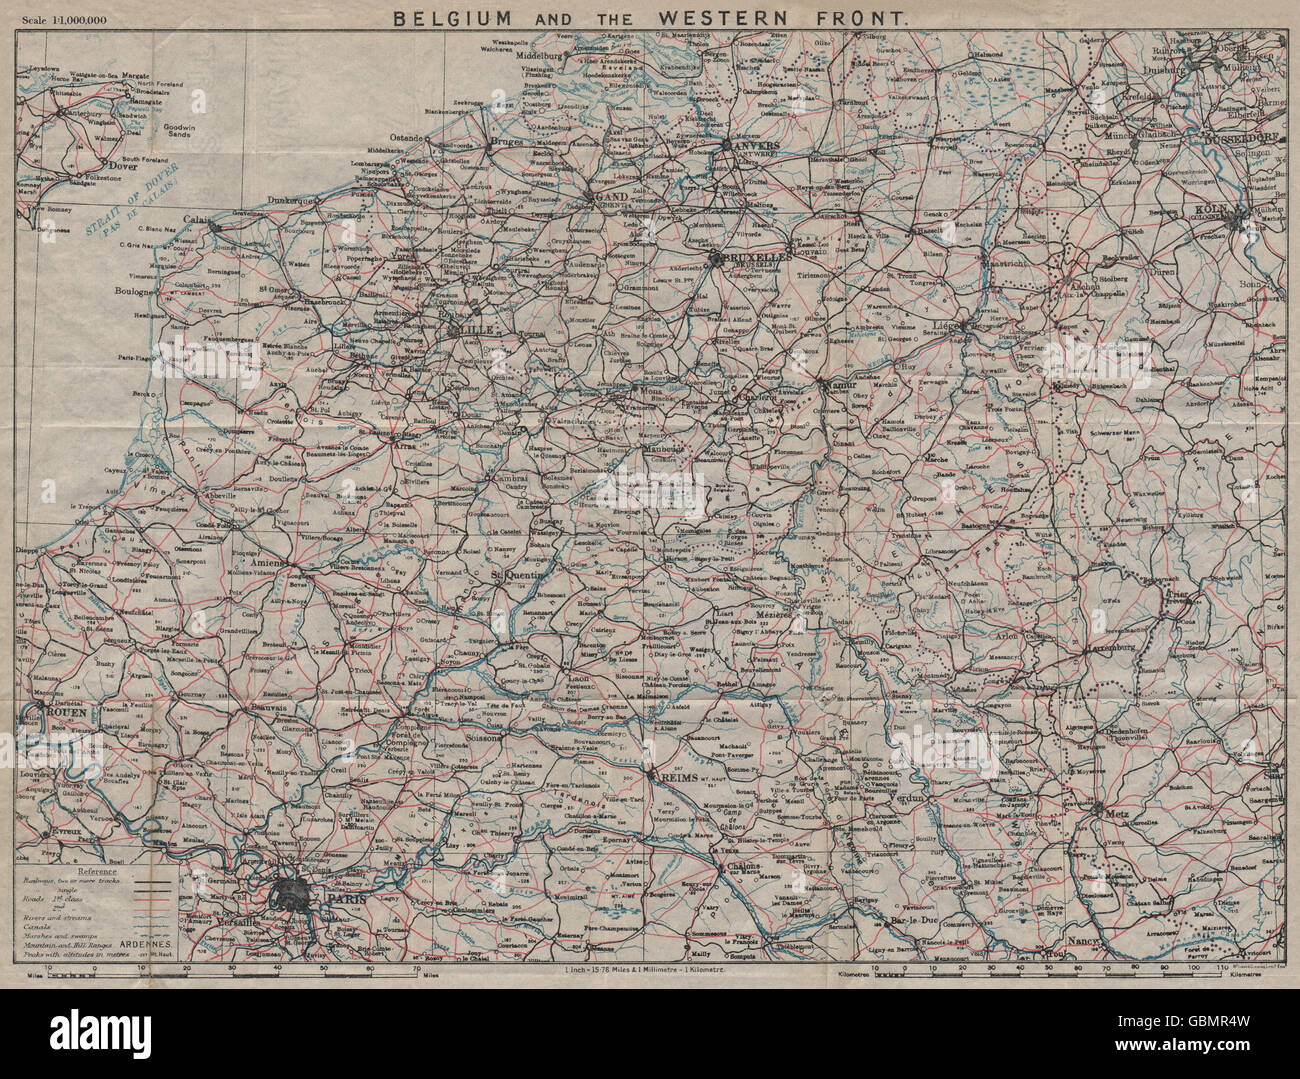 Map Of Northern France Belgium.Belgium The Western Front Vintage Map North East France Stock